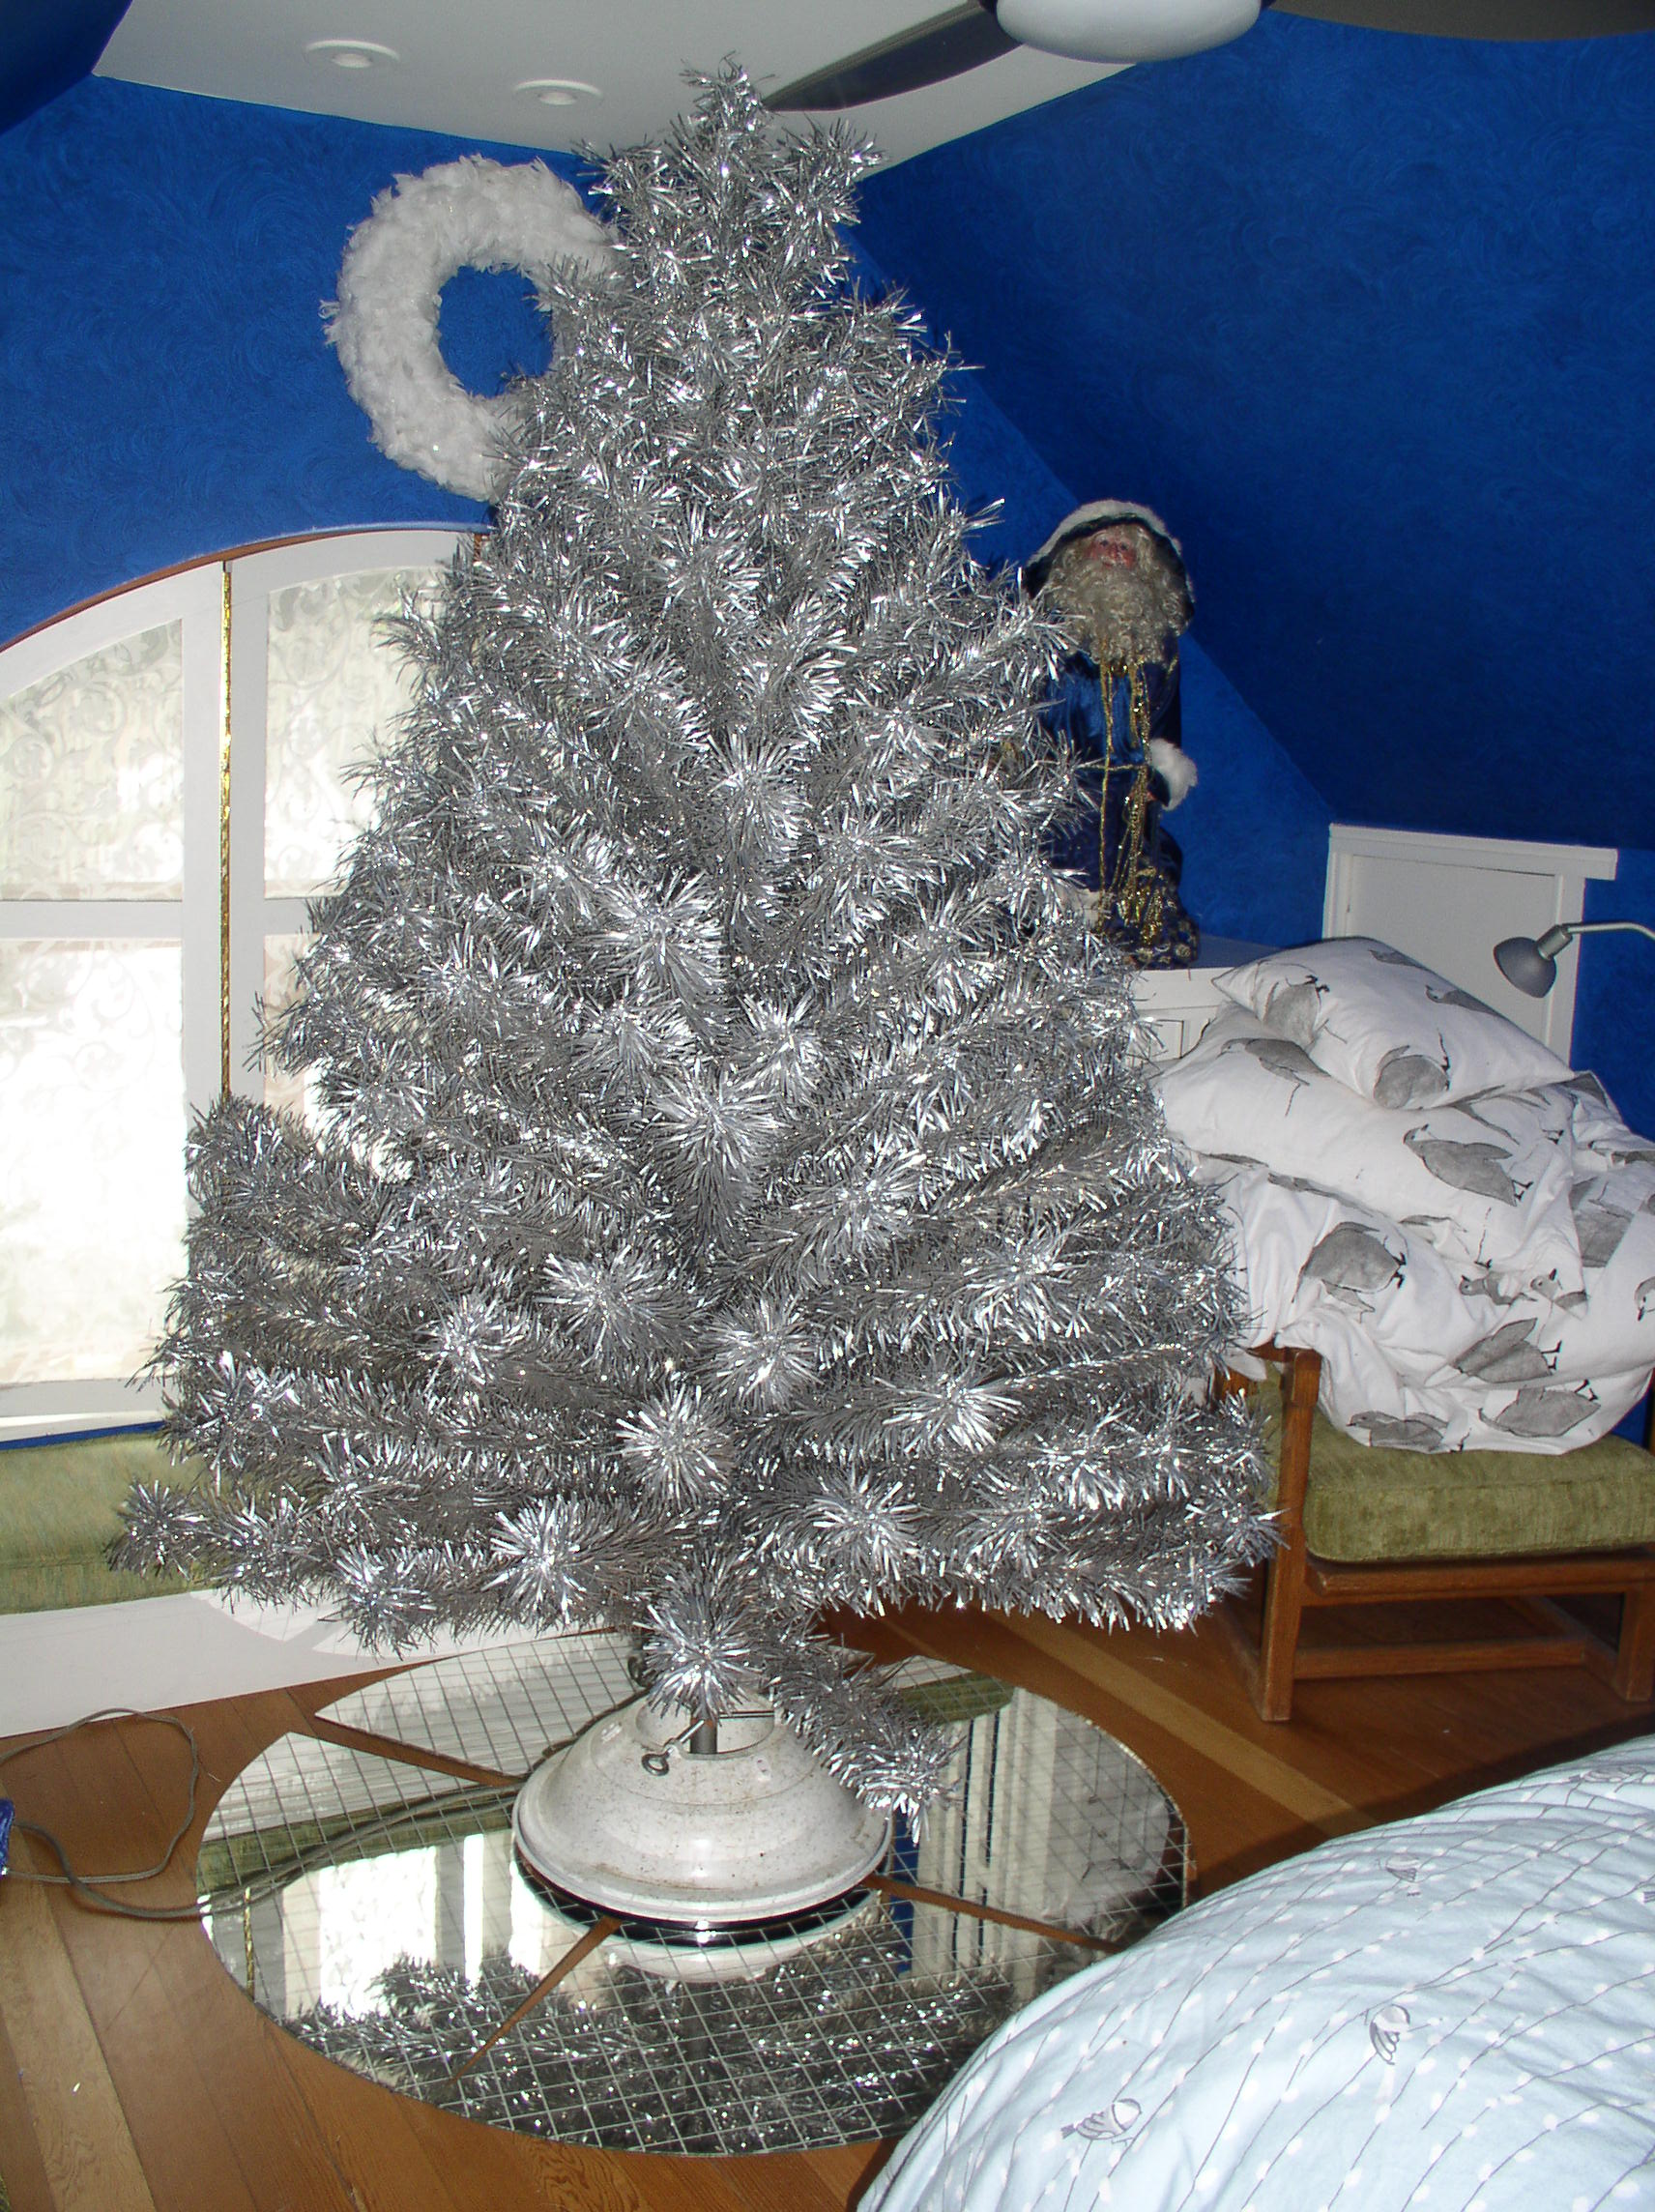 i have a vintage 75 tinsel christmas tree with a naren colorama model 104 sn3859 color wheel karosel by kresky revolving christmas tree stand light - Vintage Tinsel Christmas Tree